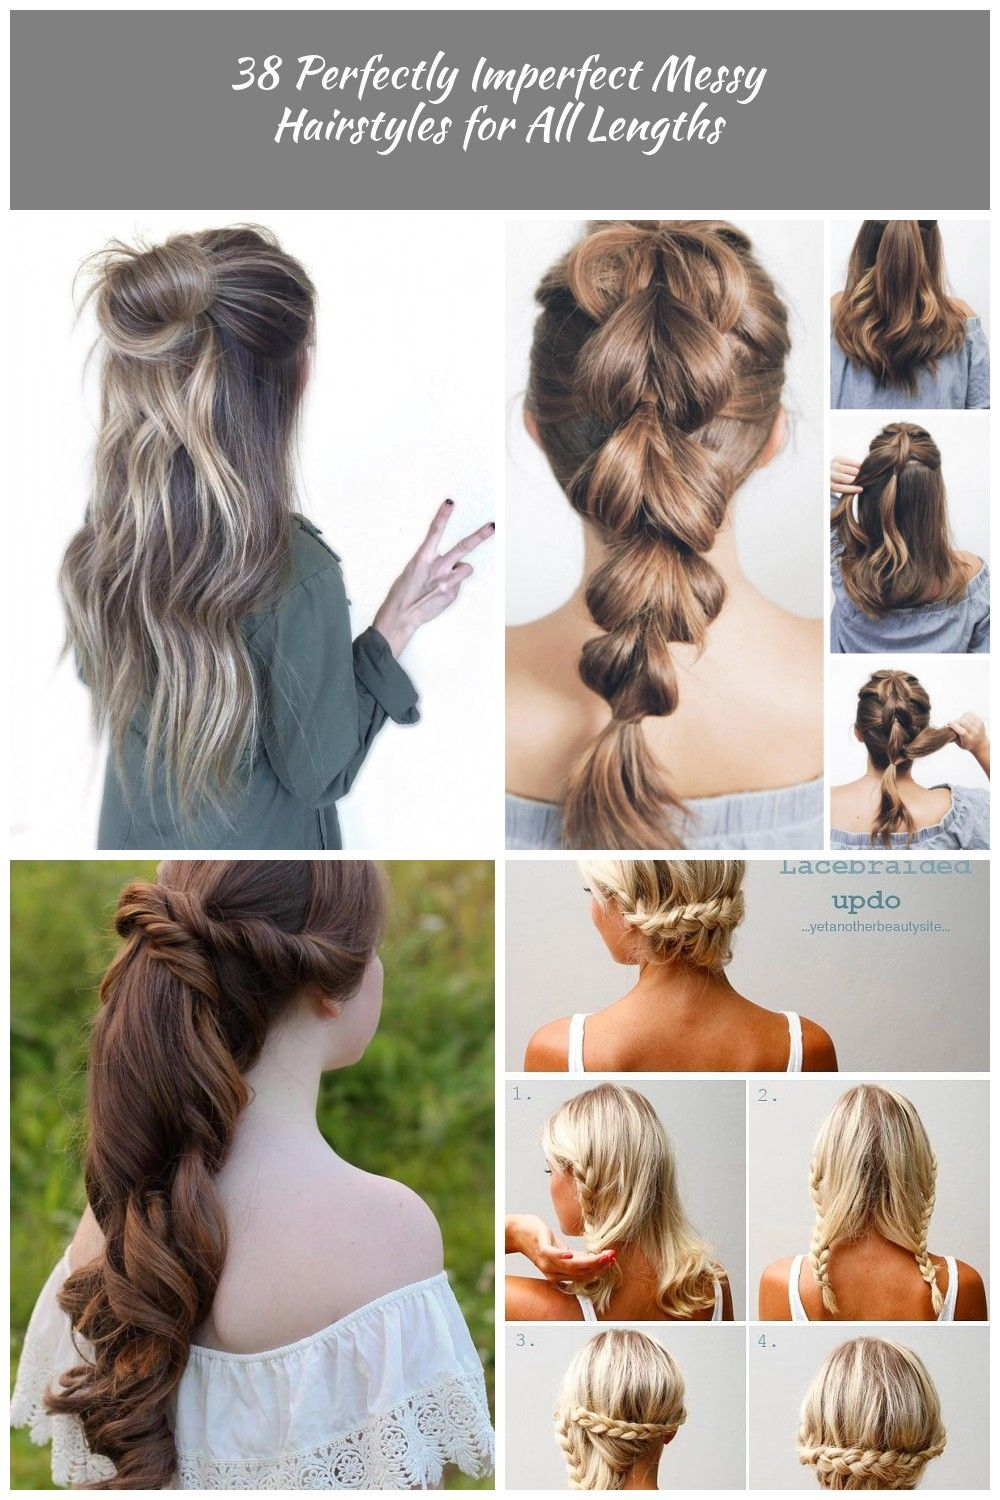 Bun Half Updo For Long Hair long hair 38 Perfectly Imperfect Messy  Hairstyles for All Lengths